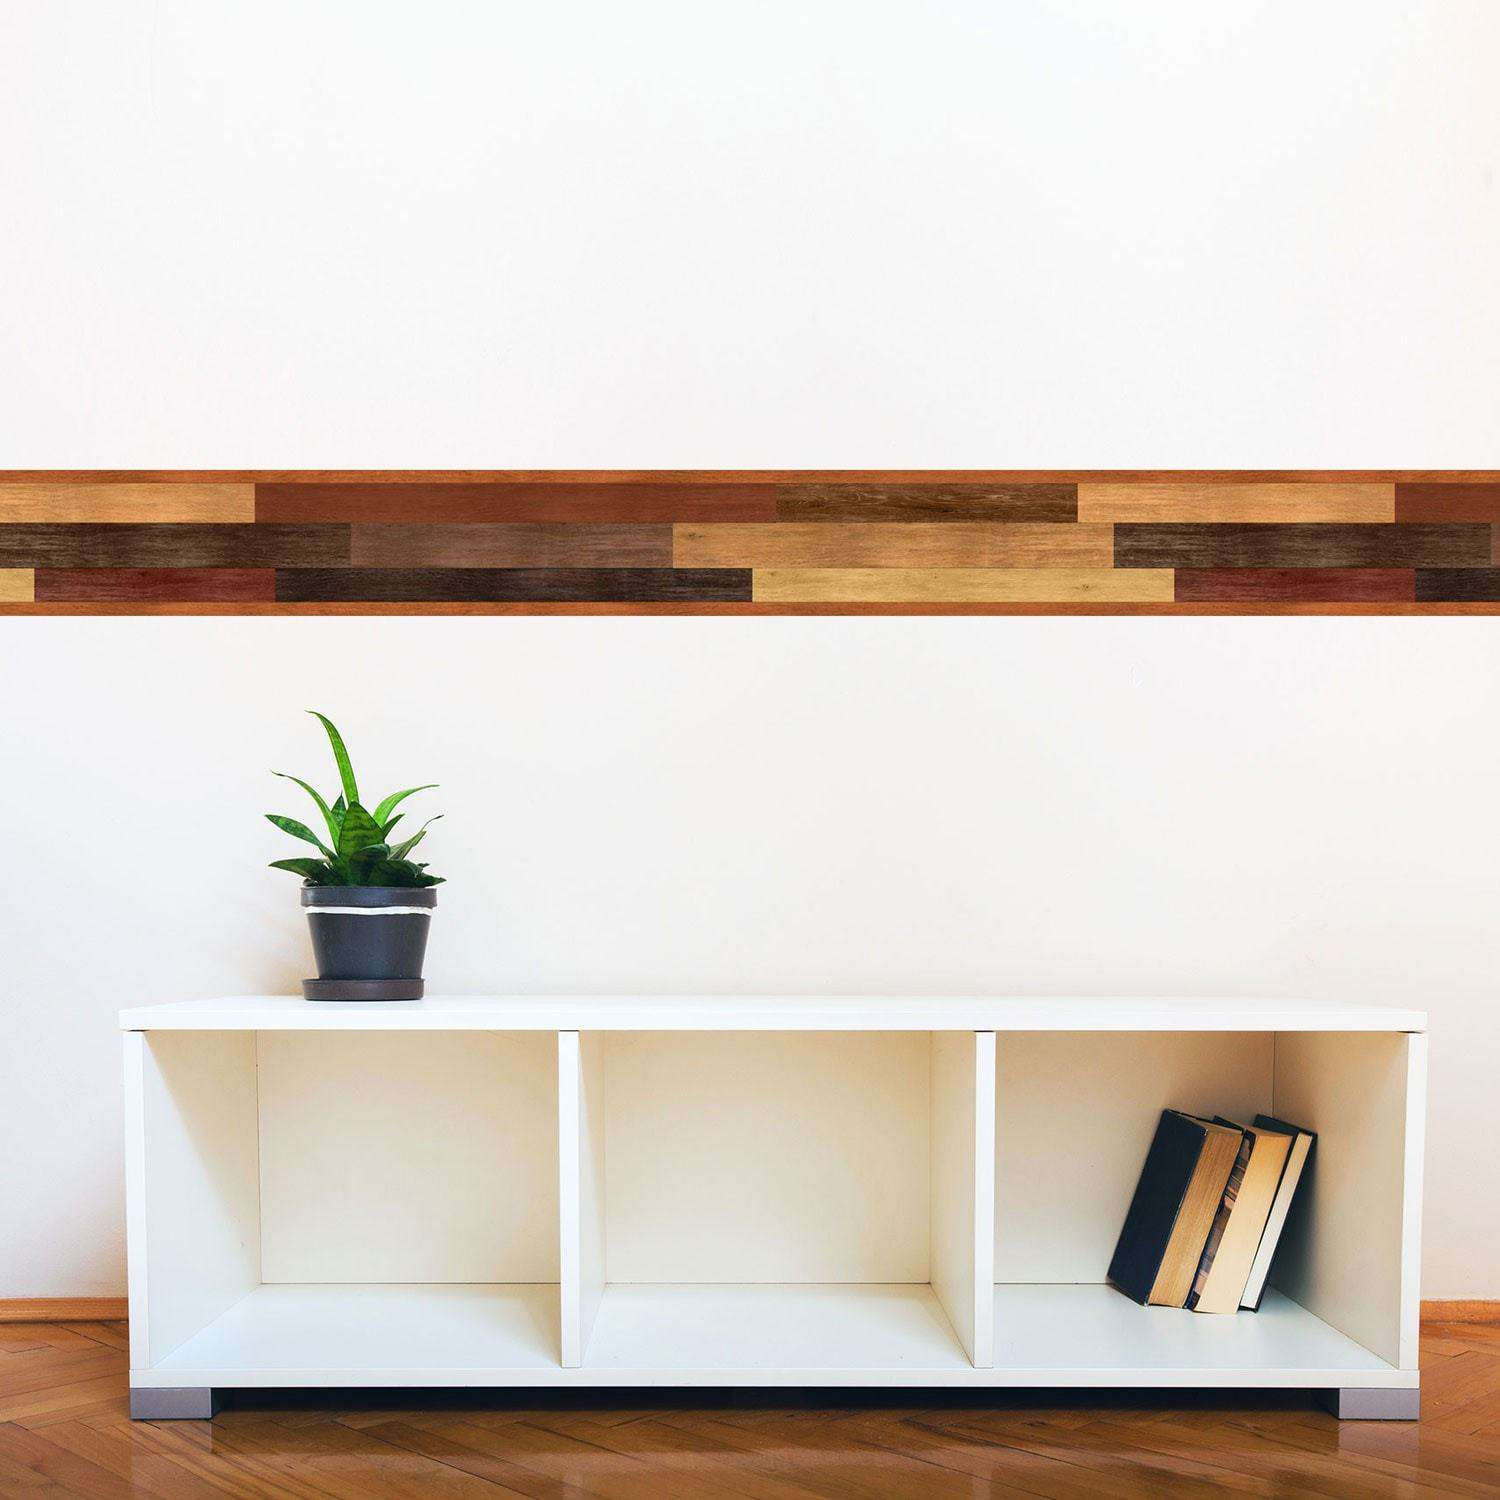 MultiToned Wood Stripe Wall Decal - Wall decals wood